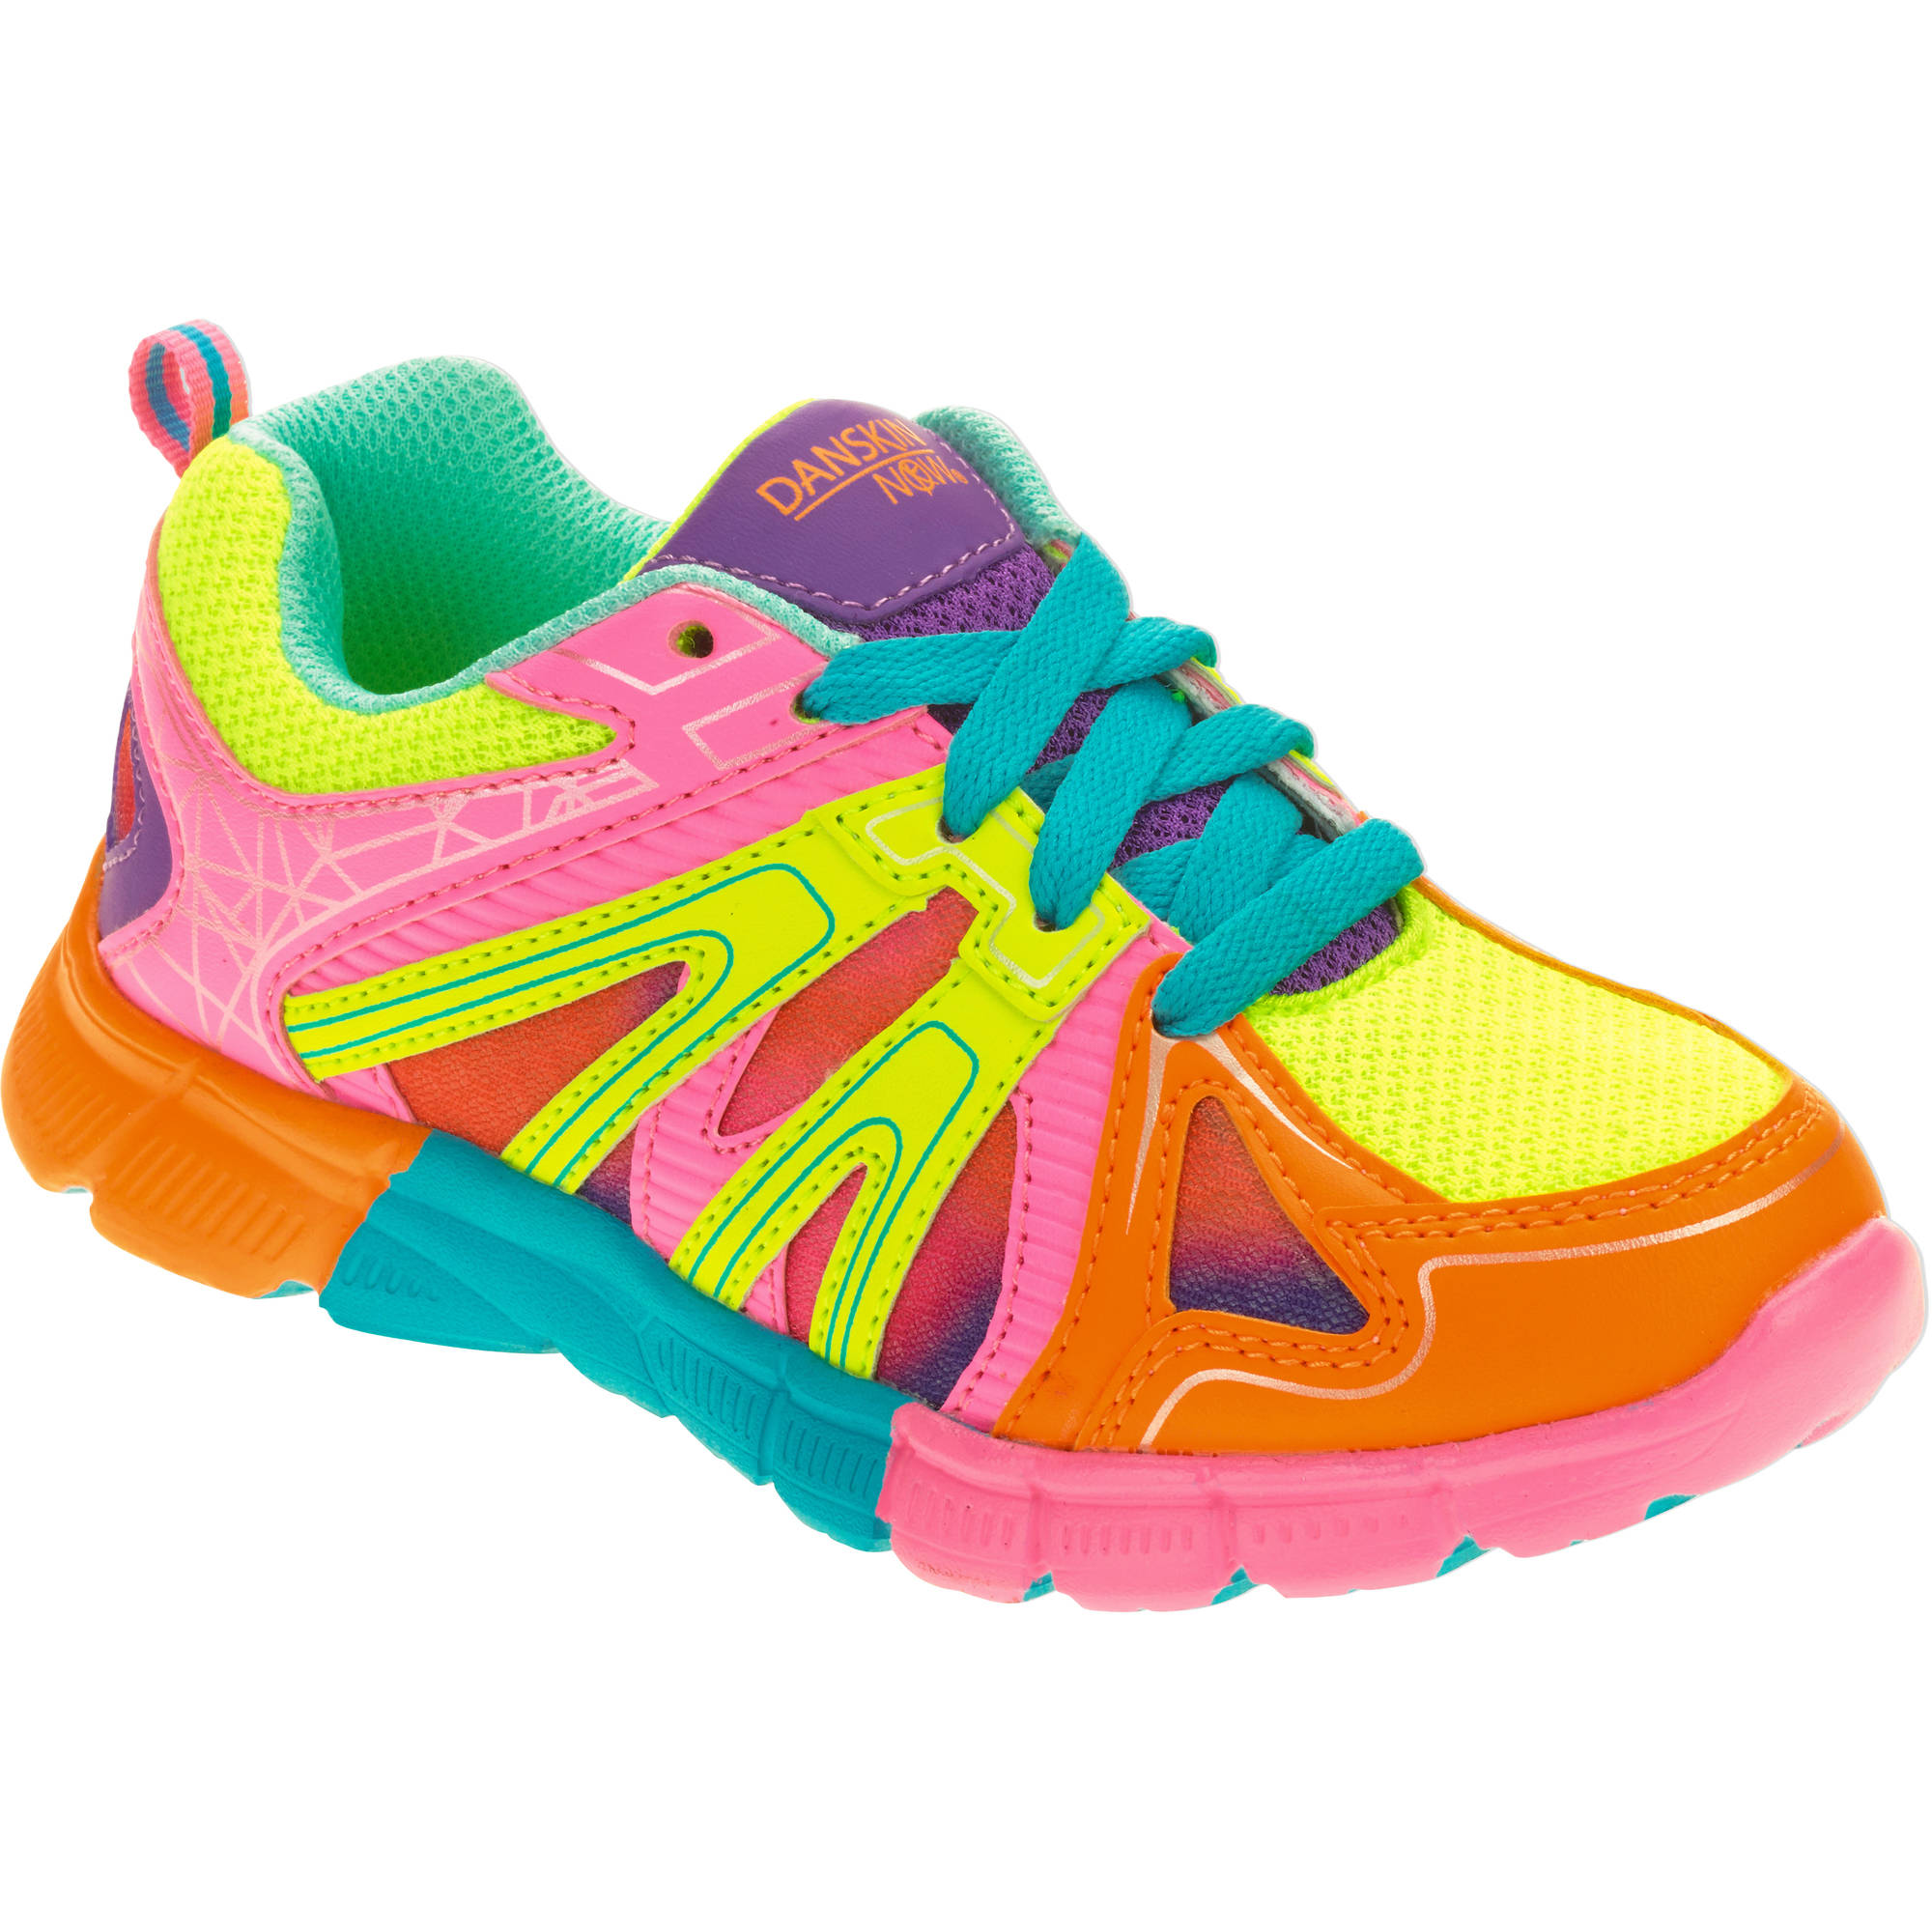 Danskin Now Girls' Fashion Athletic Shoe